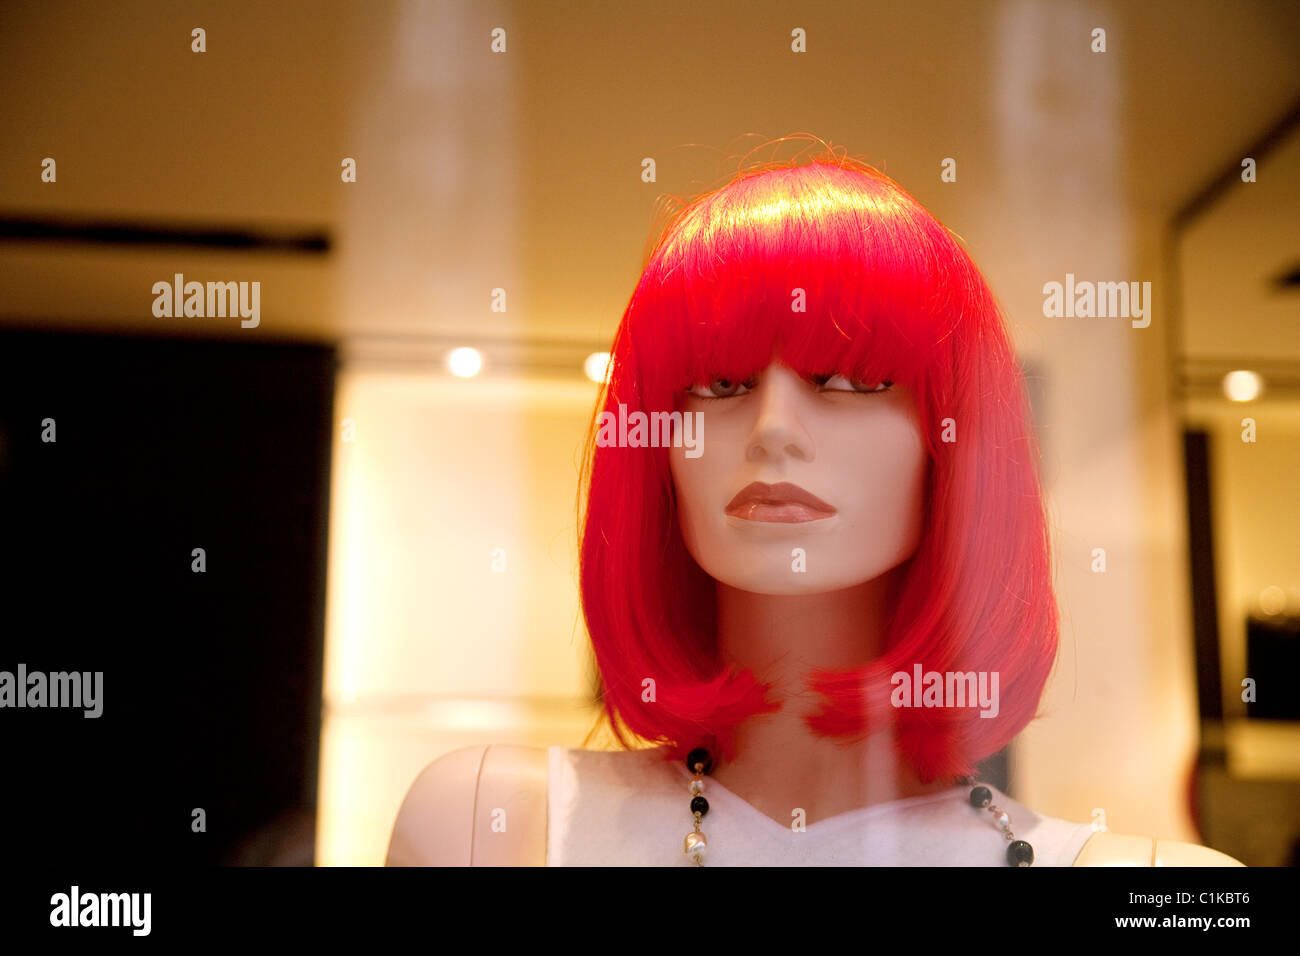 Redheaded tailors dummy in a shop window, Chanel, Venice, Italy Stock Photo